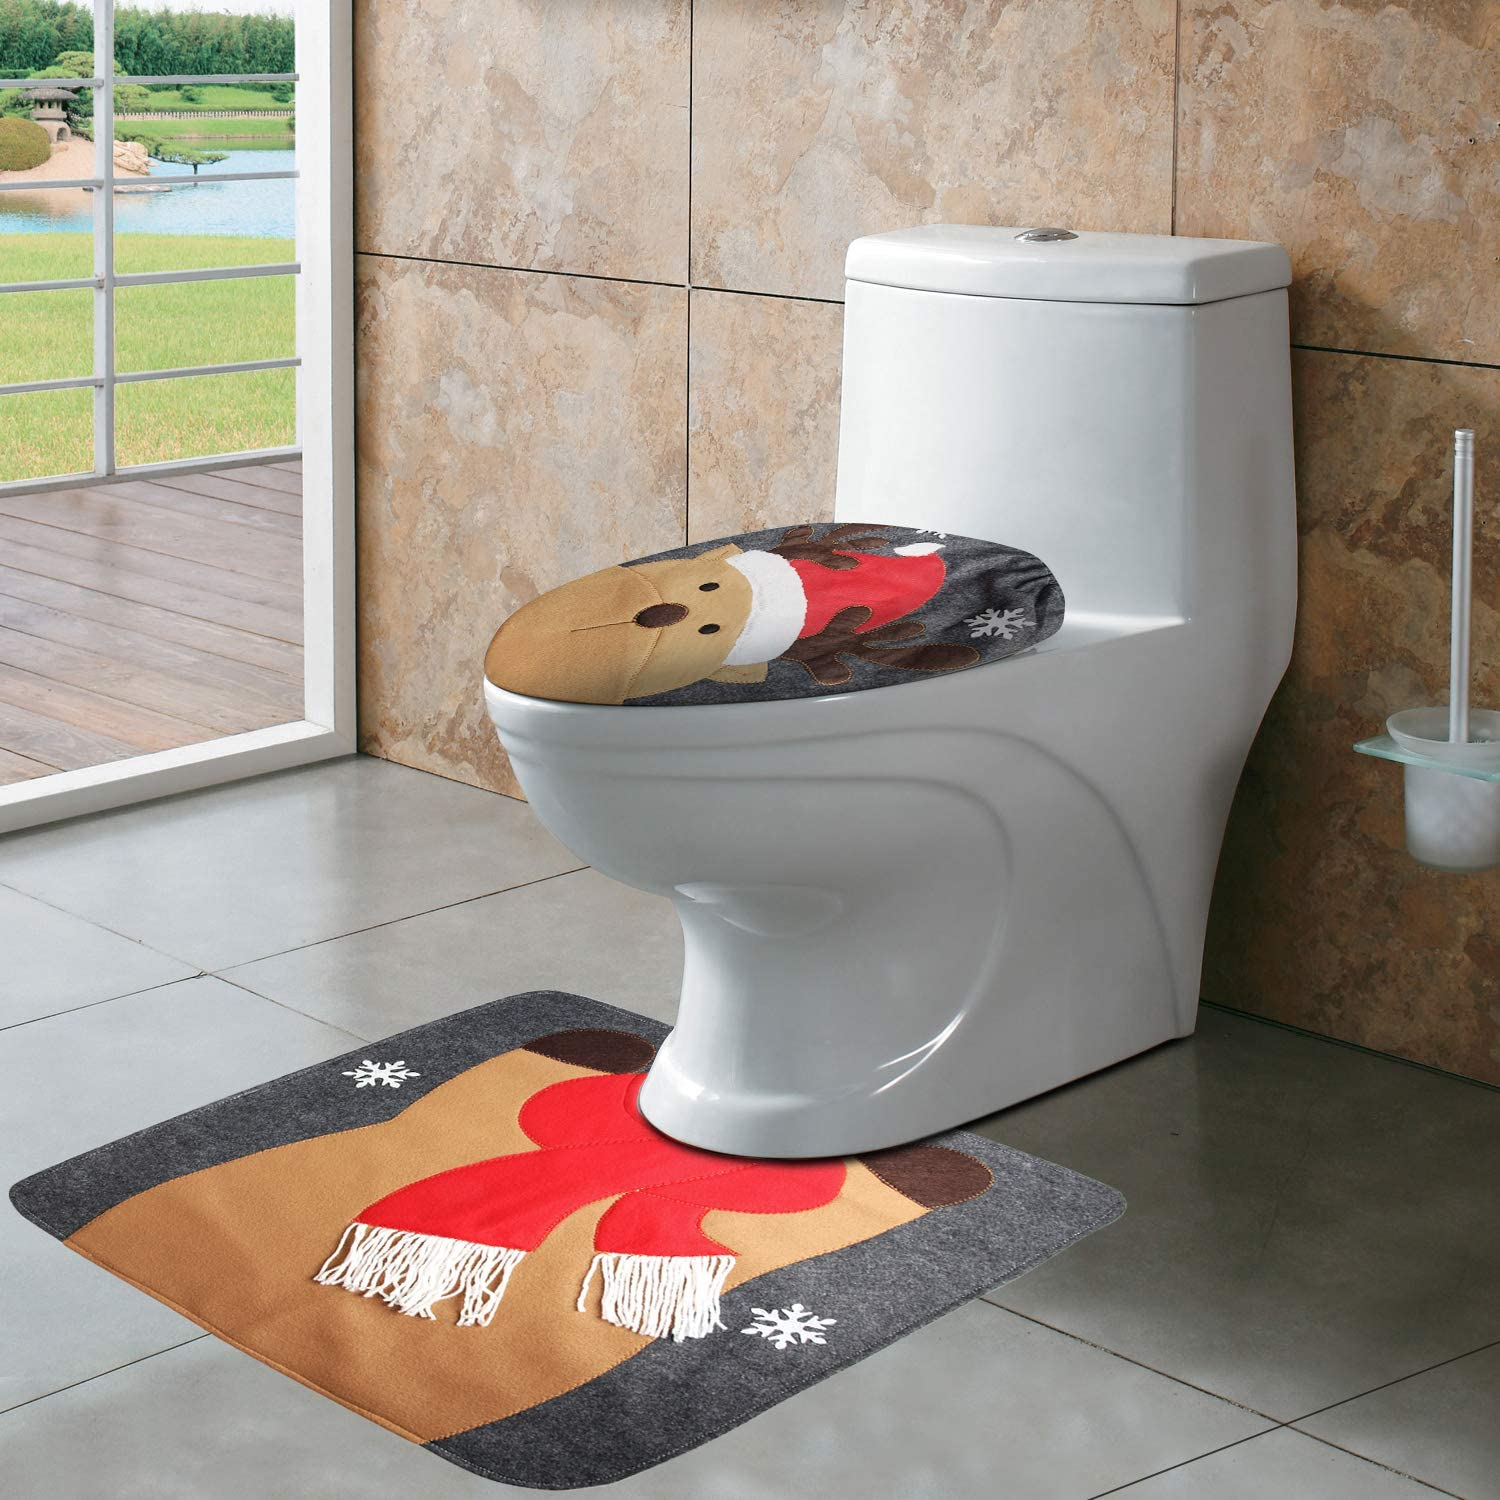 CrtWorld Christmas Toilet Seat Cover and Rug Set Reindeer Toilet Seat Cover for Christmas Bathroom Sets(Reindeer Toilet Cover)